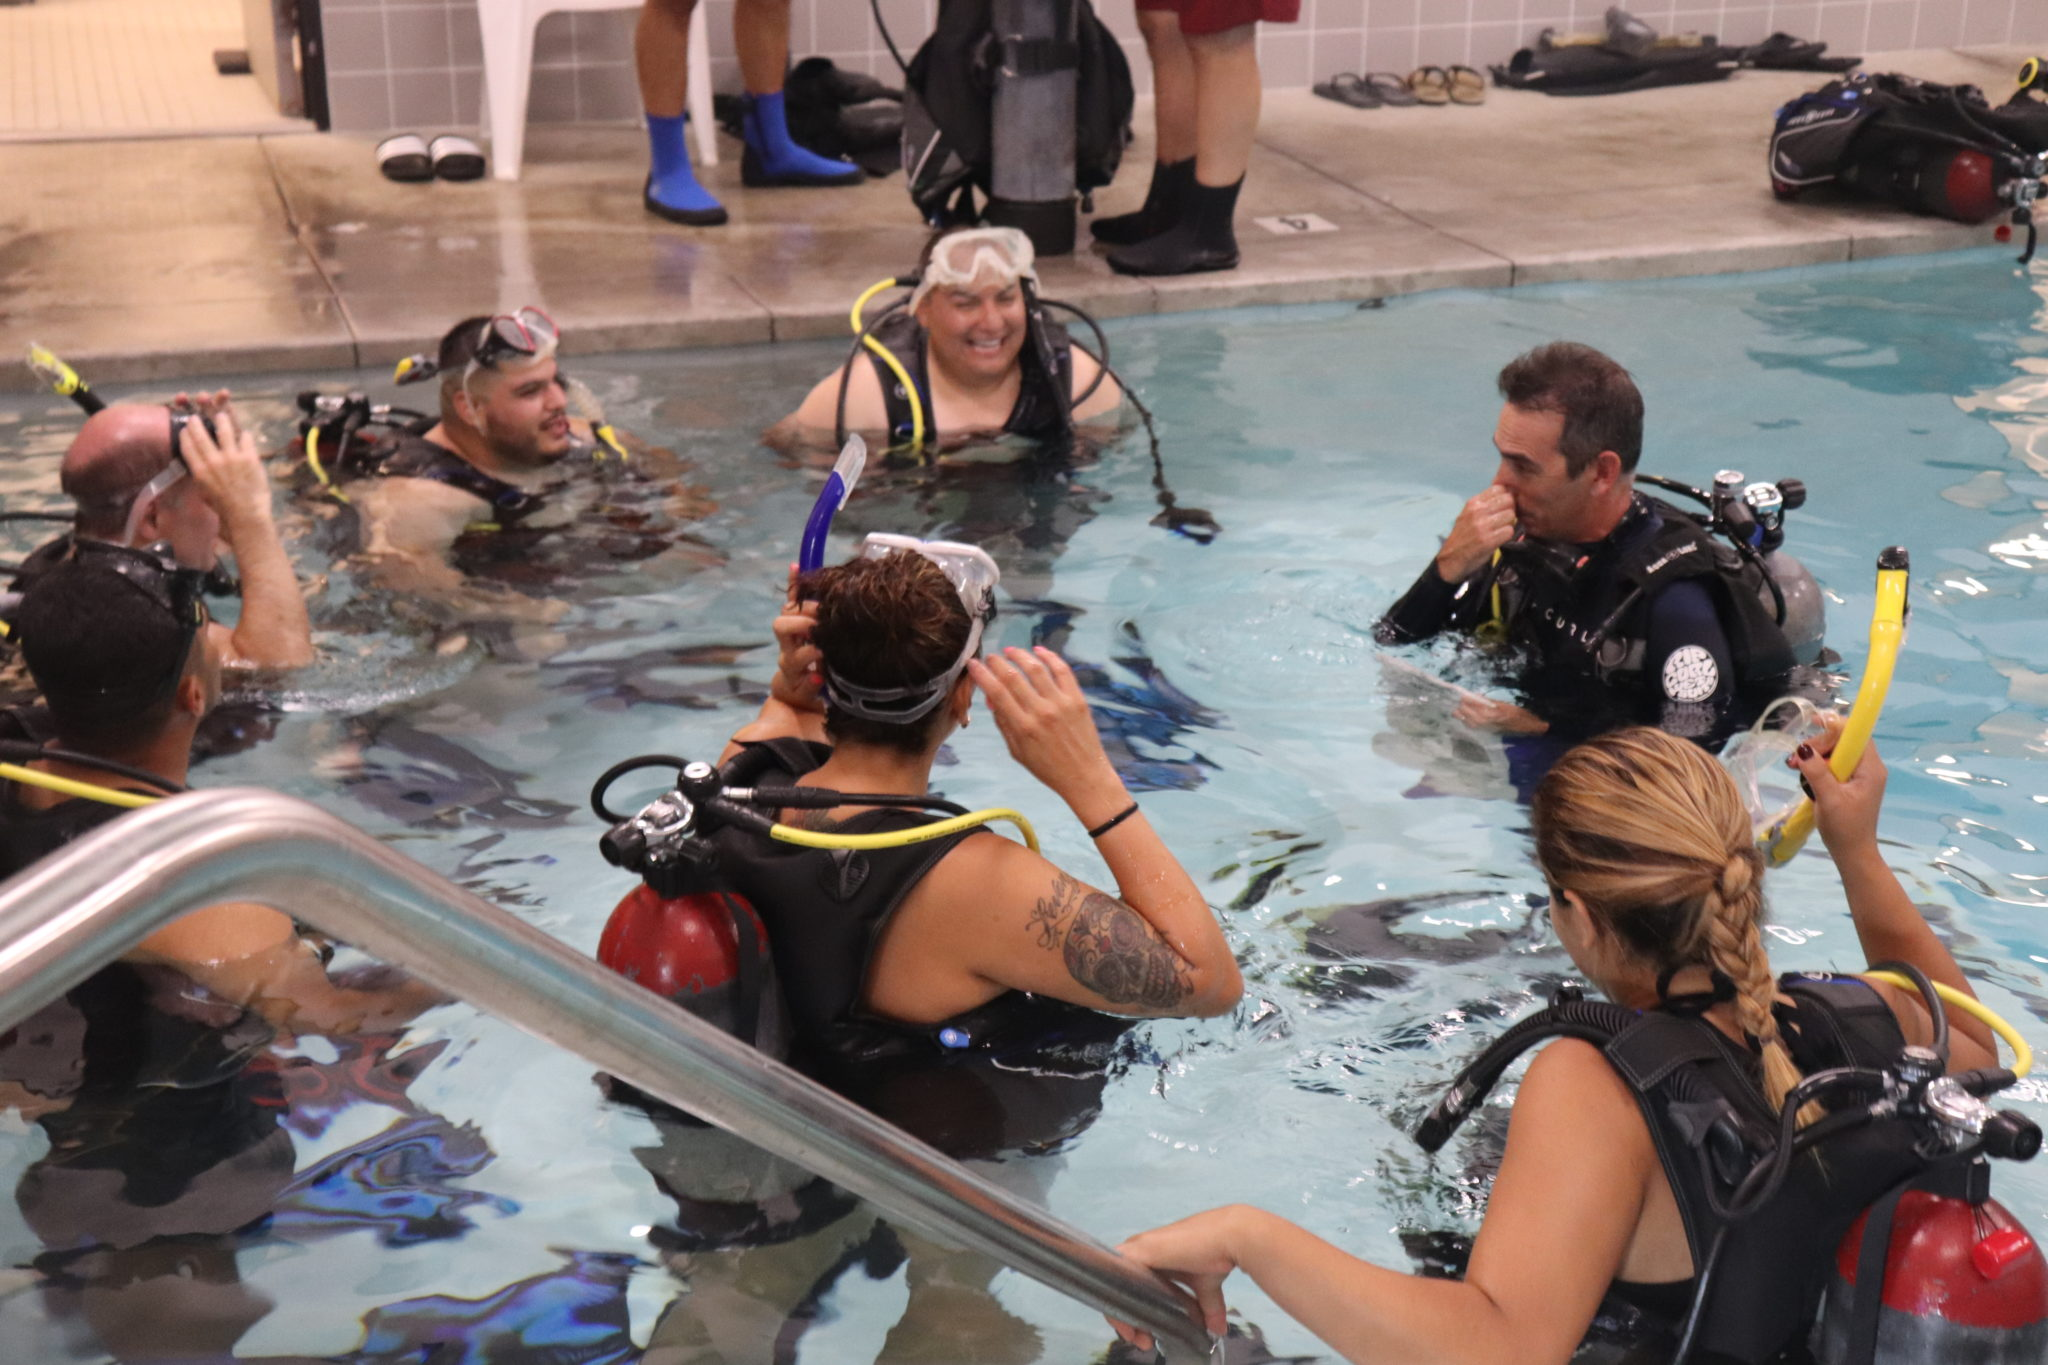 Scuba divers taking a class in a pool